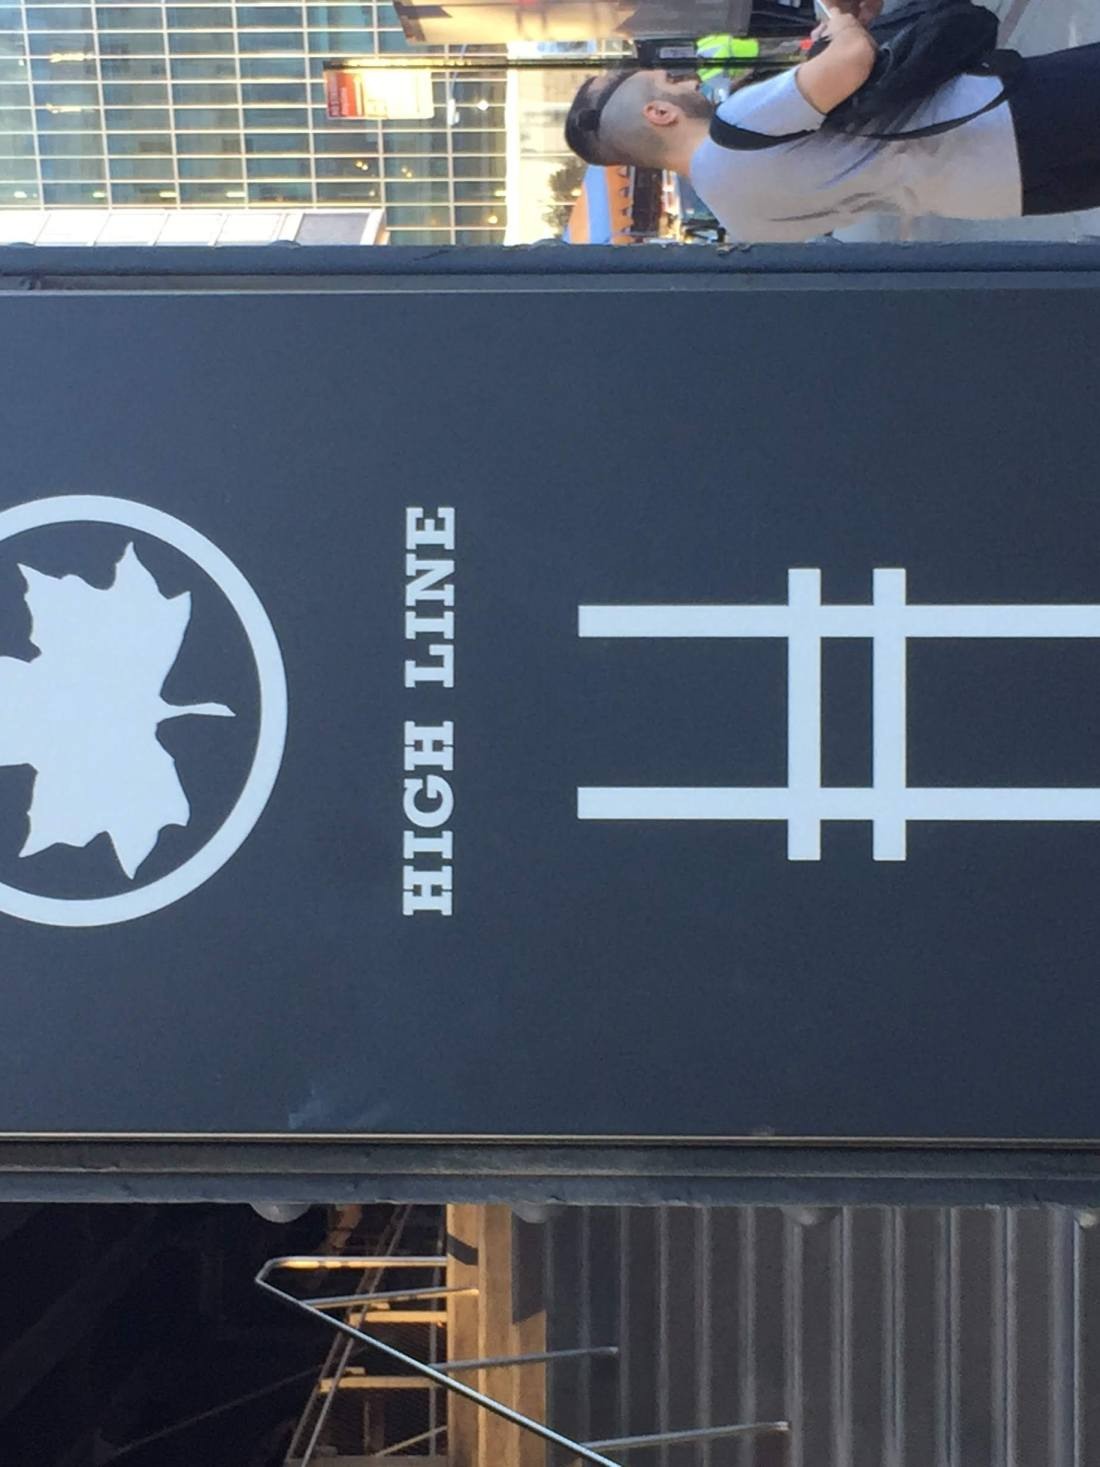 The sign for the High Line, New York